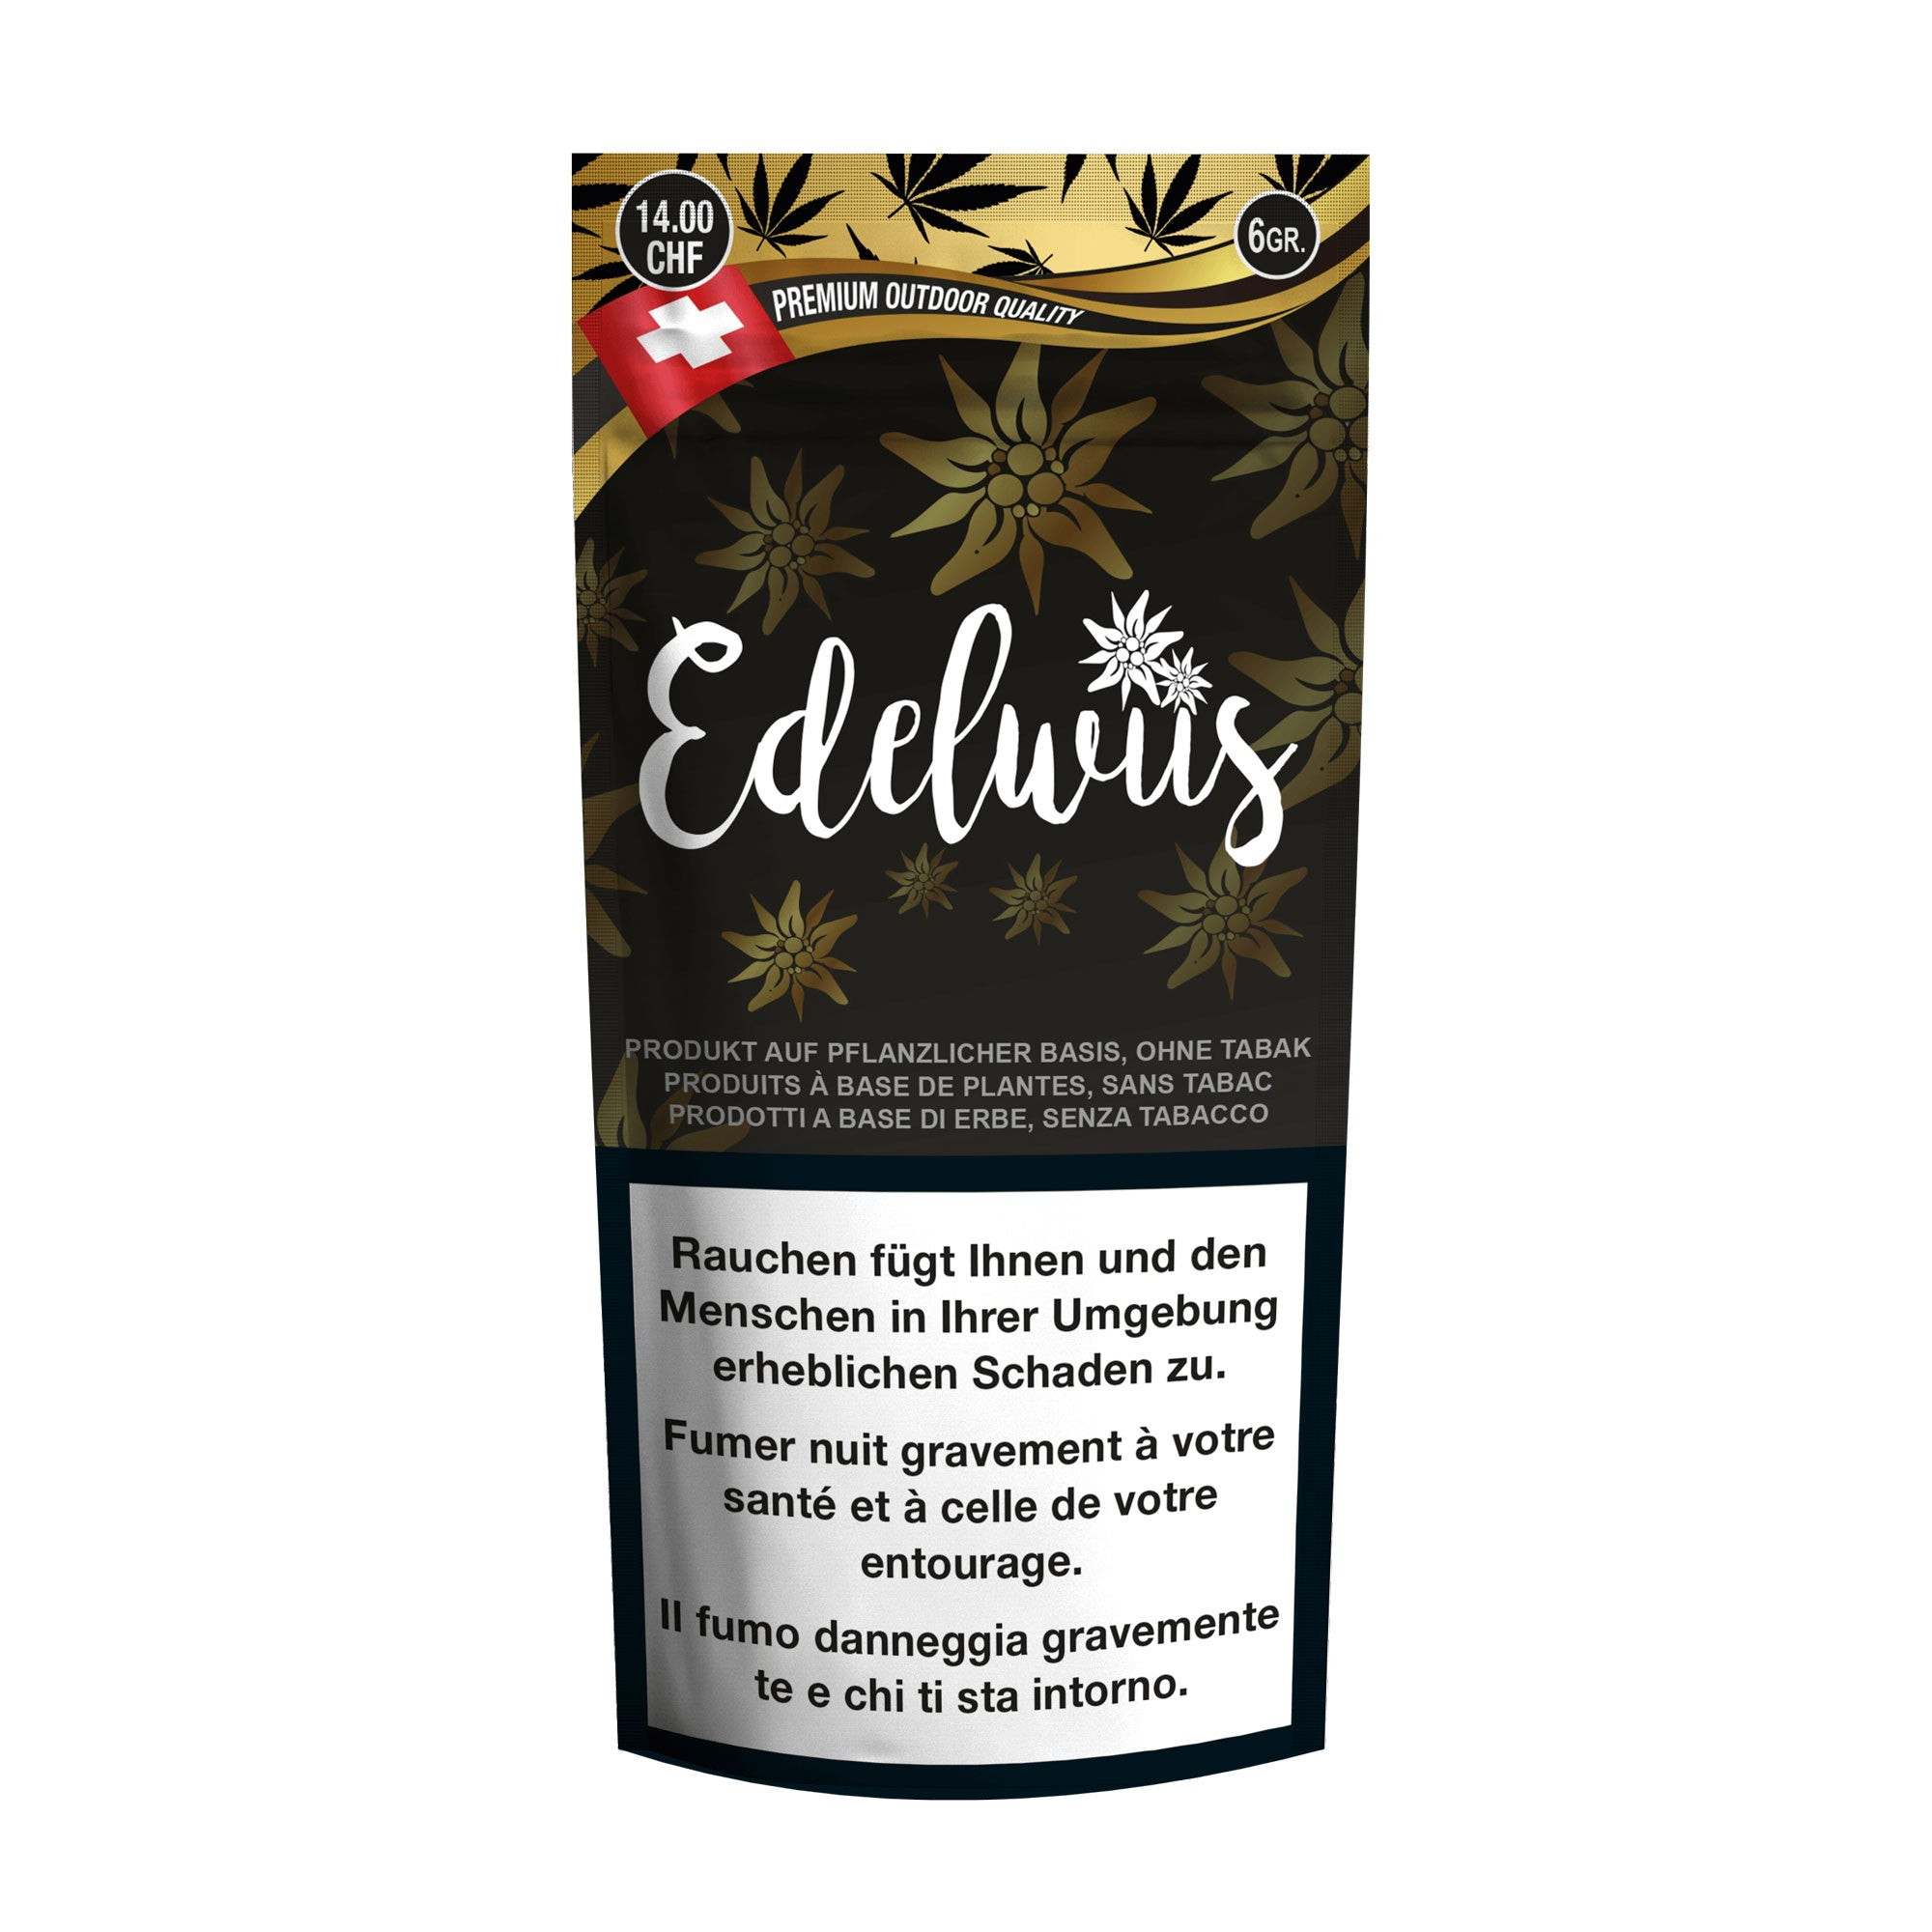 Edelwiis-CBD Cannabis-Pure Production-Swiss CBD Shop-uWeed